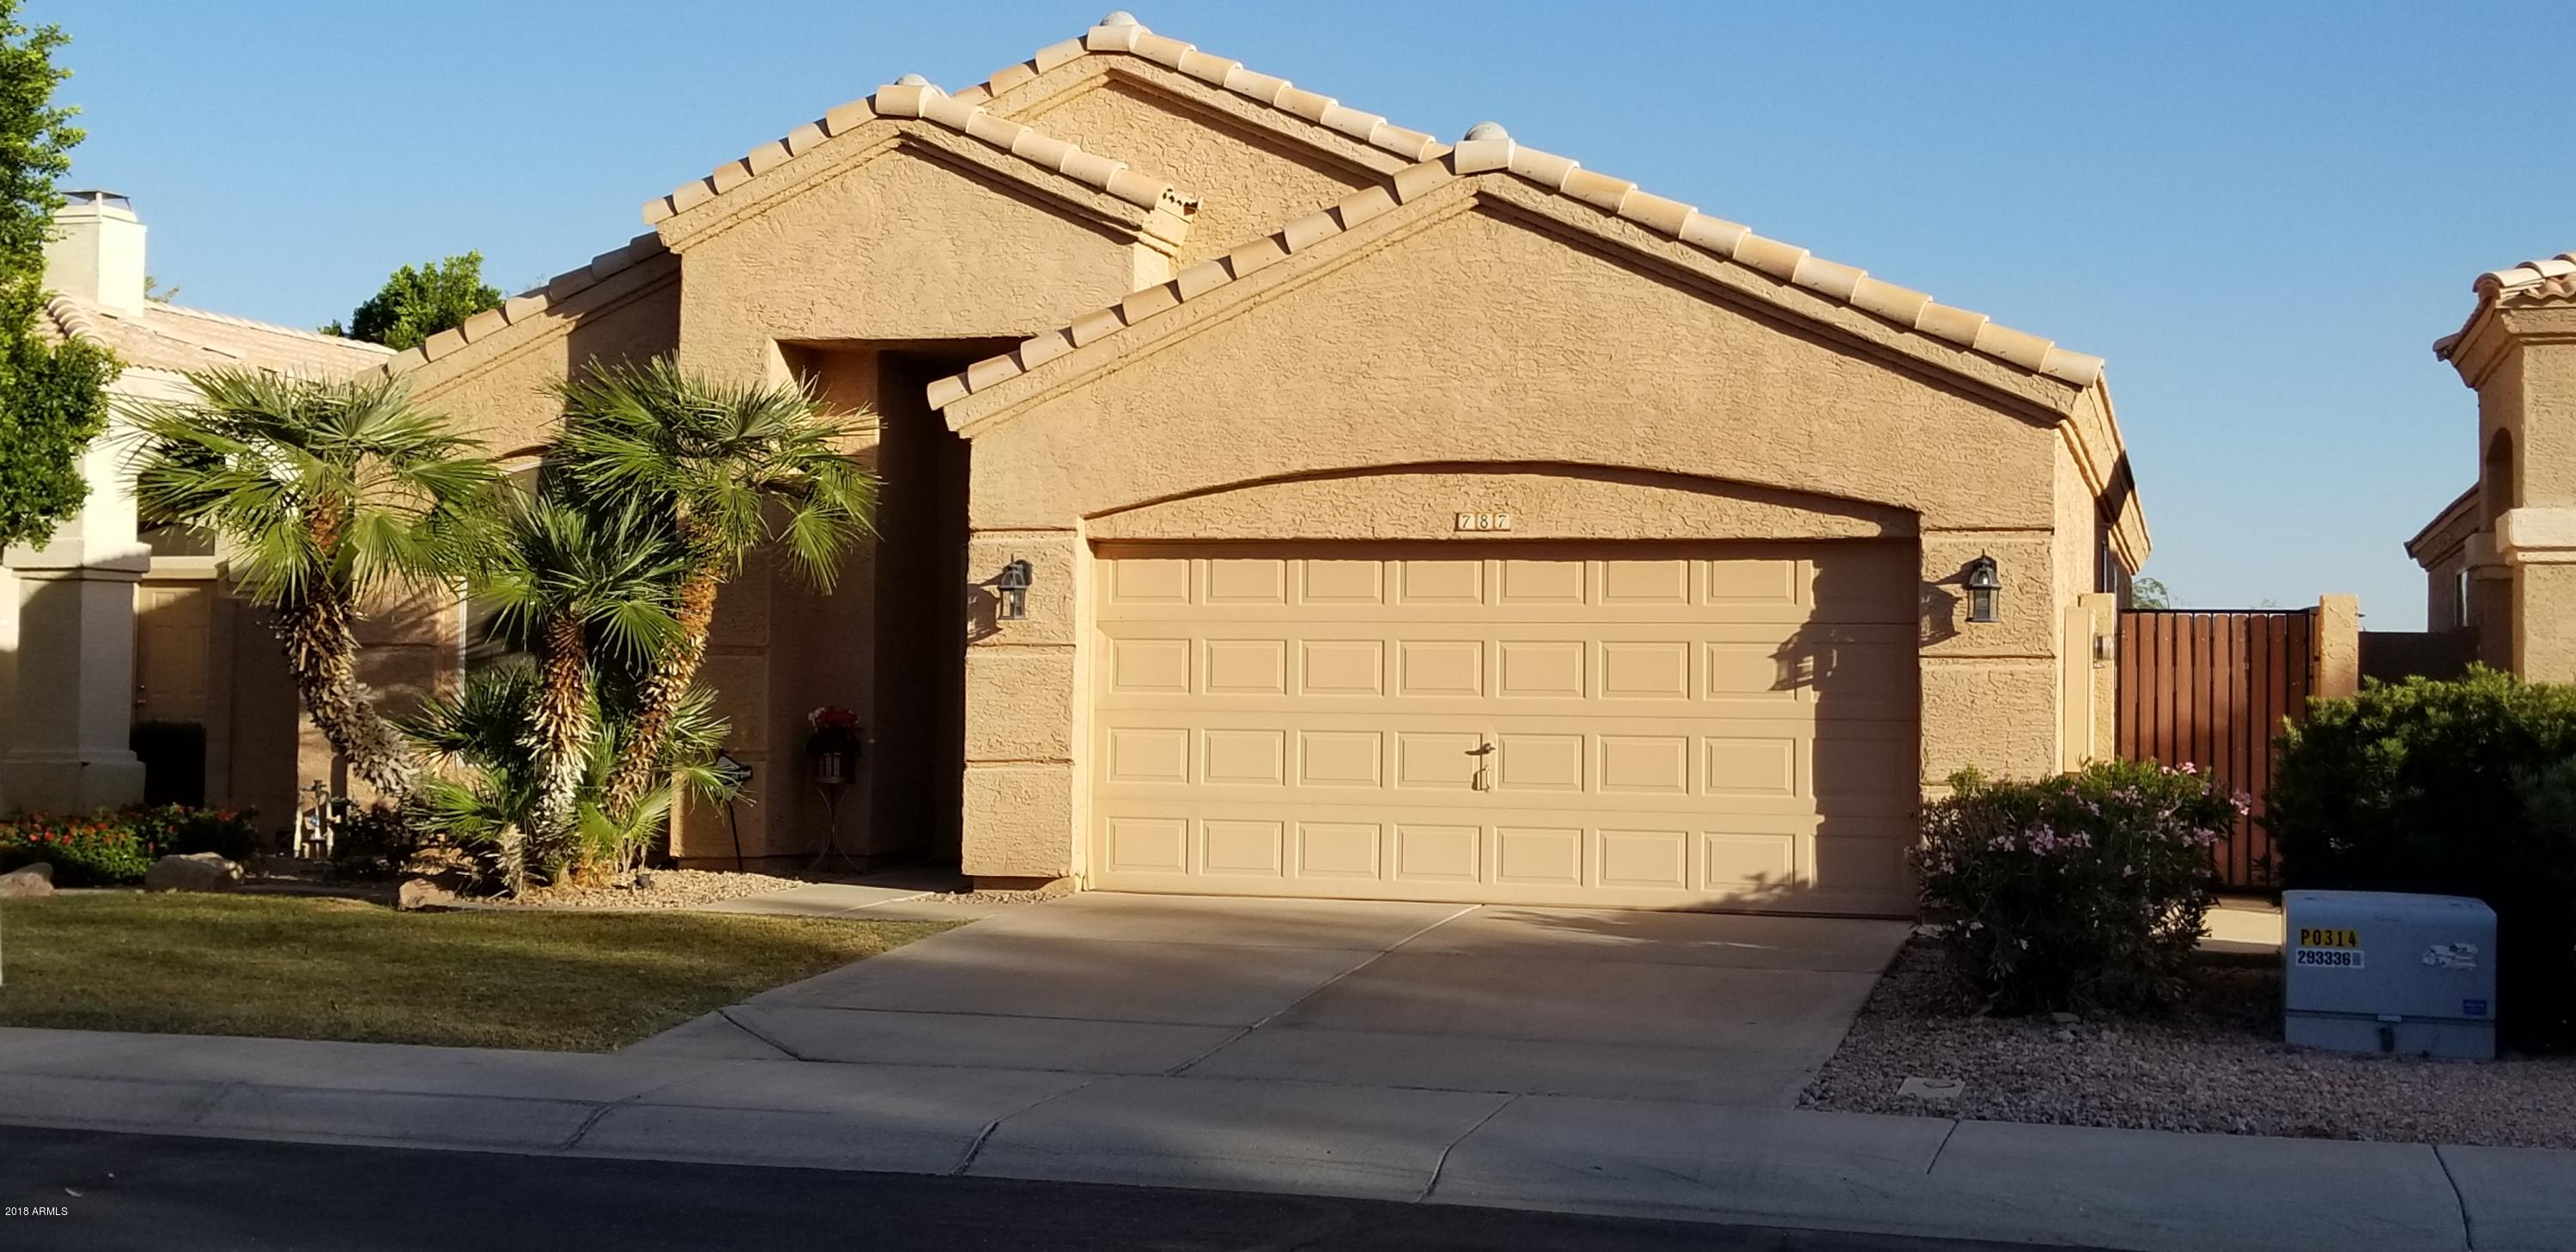 MLS 5845375 787 N Gregory Place, Chandler, AZ 85226 Chandler AZ Warner Ranch